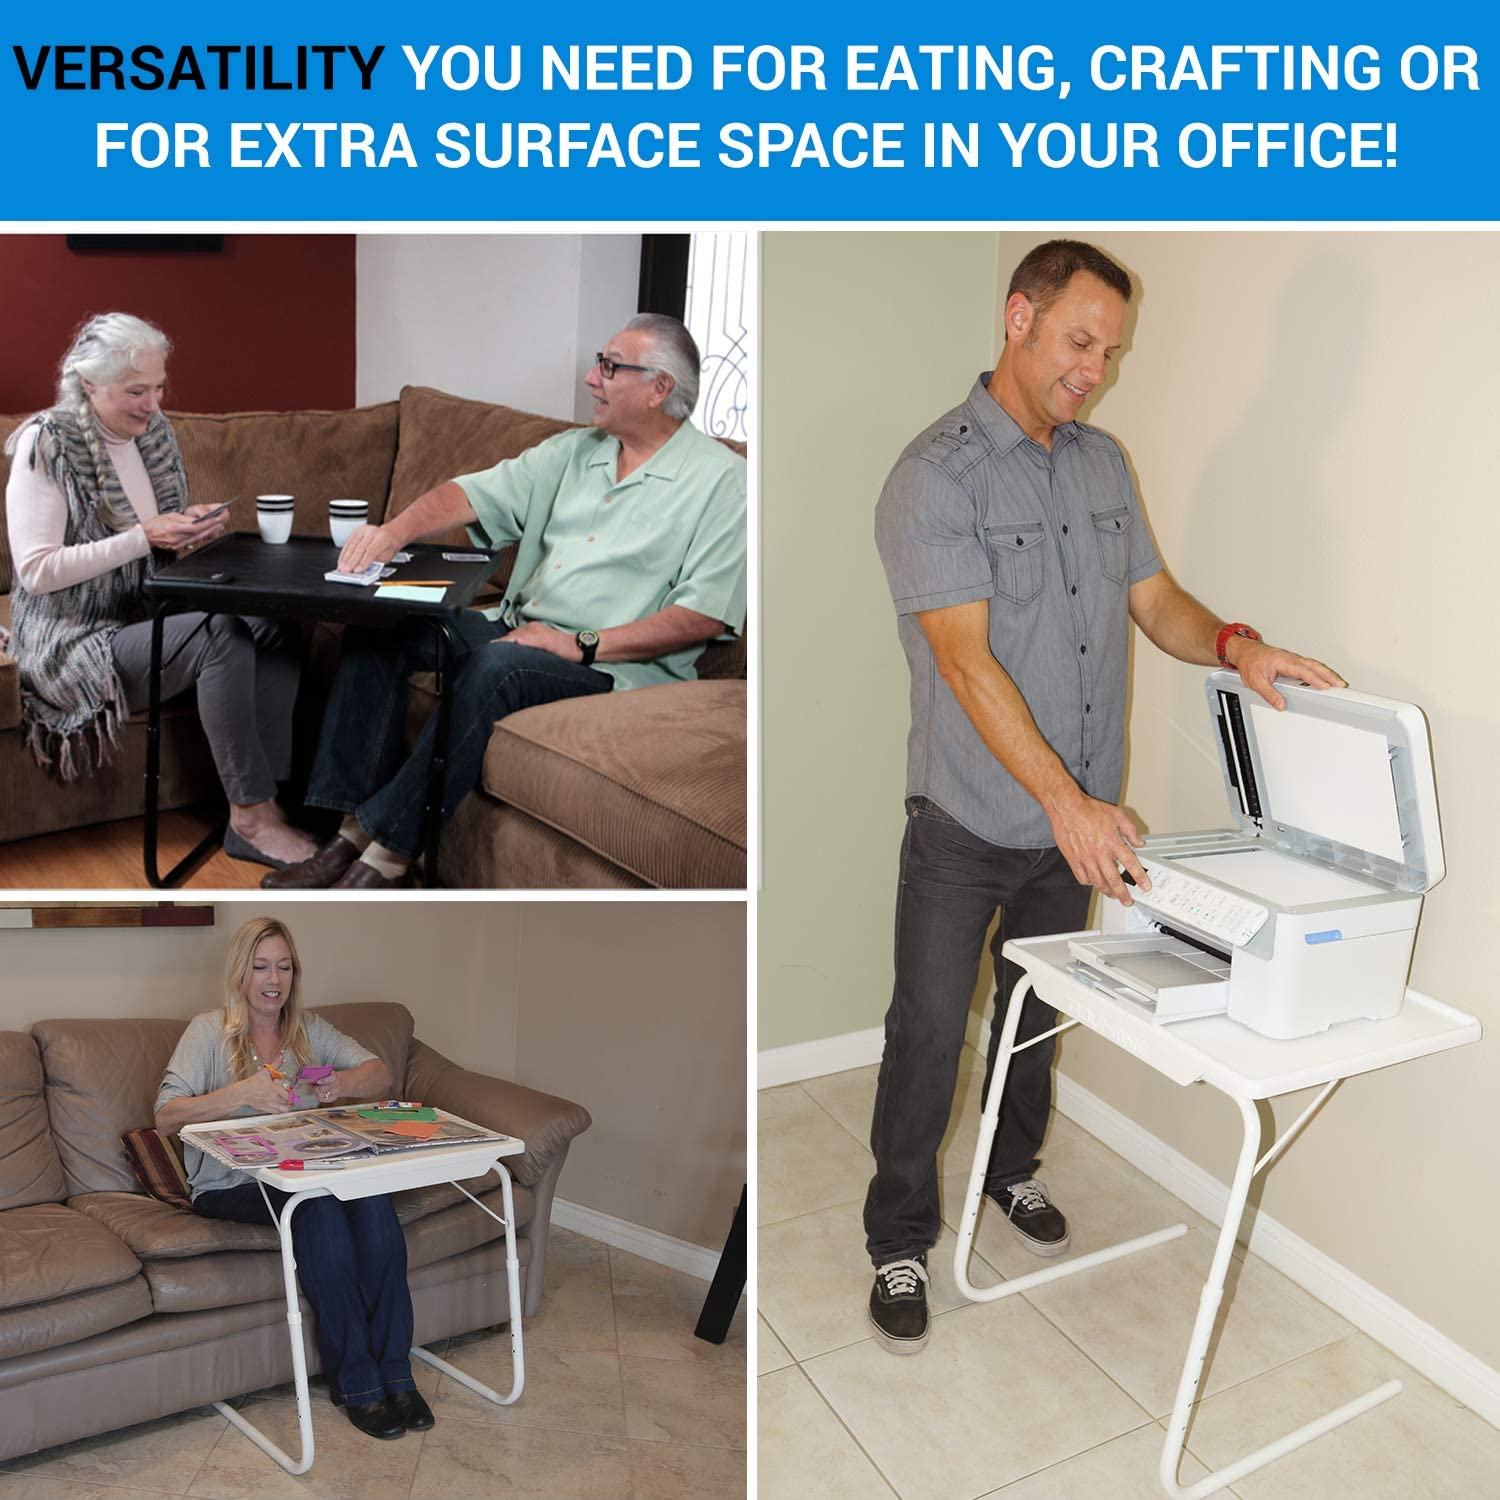 Table Mate XL TV Tray Extra Large Folding Table Adjustable to 6 Heights and 3 Angles for Eating Laptop and Multipurpose Use Black